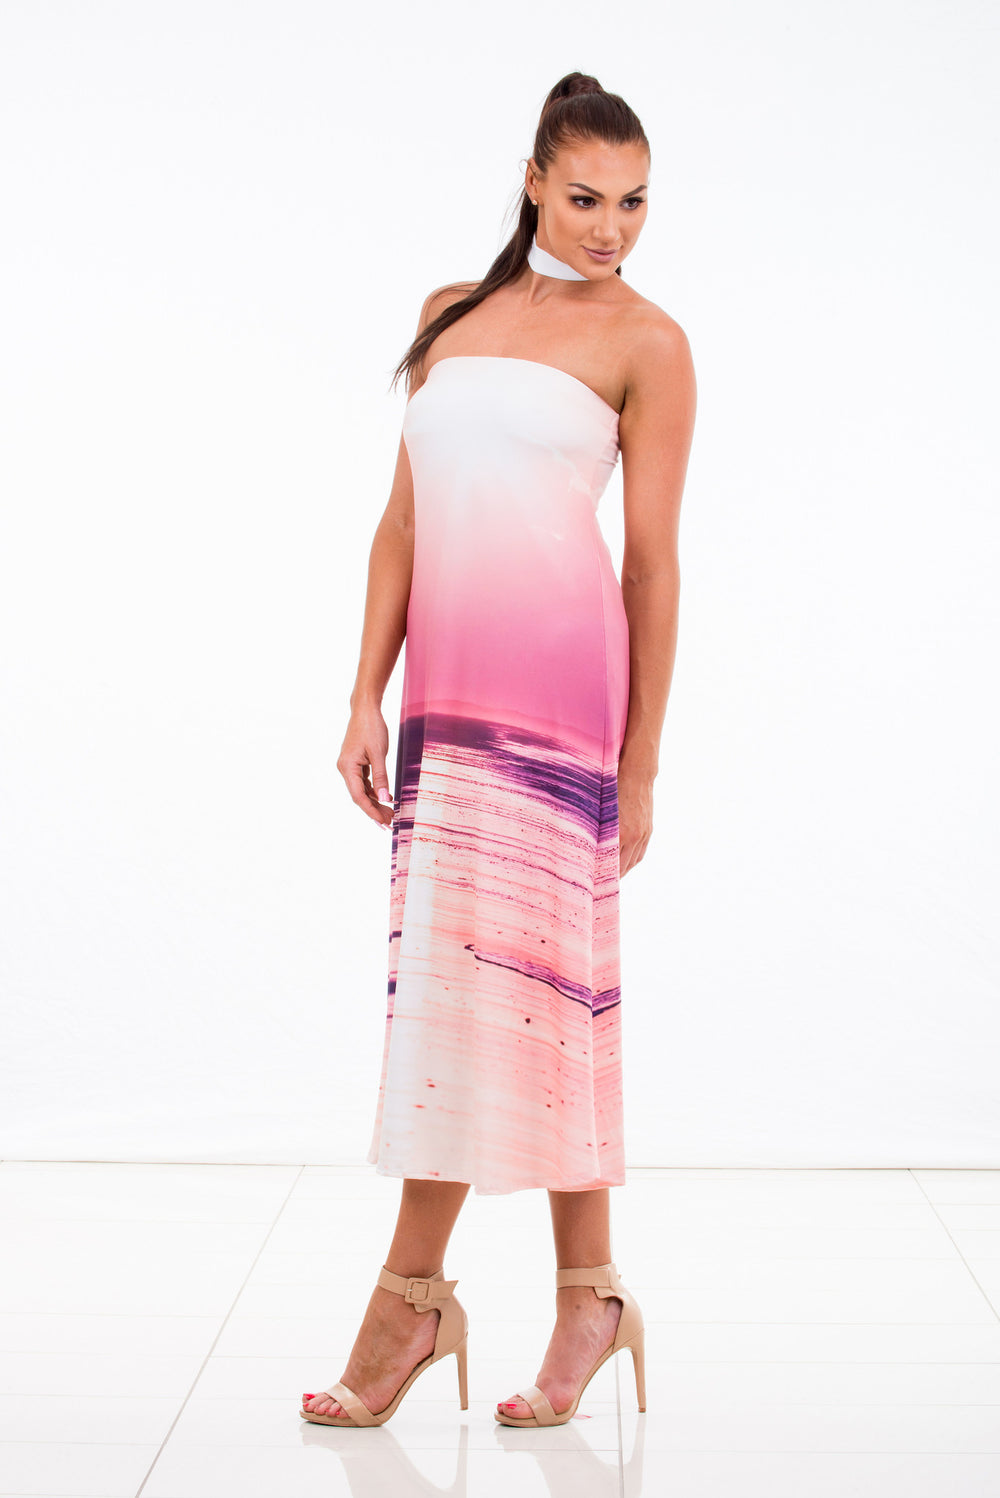 Choker dress womens pink purple print